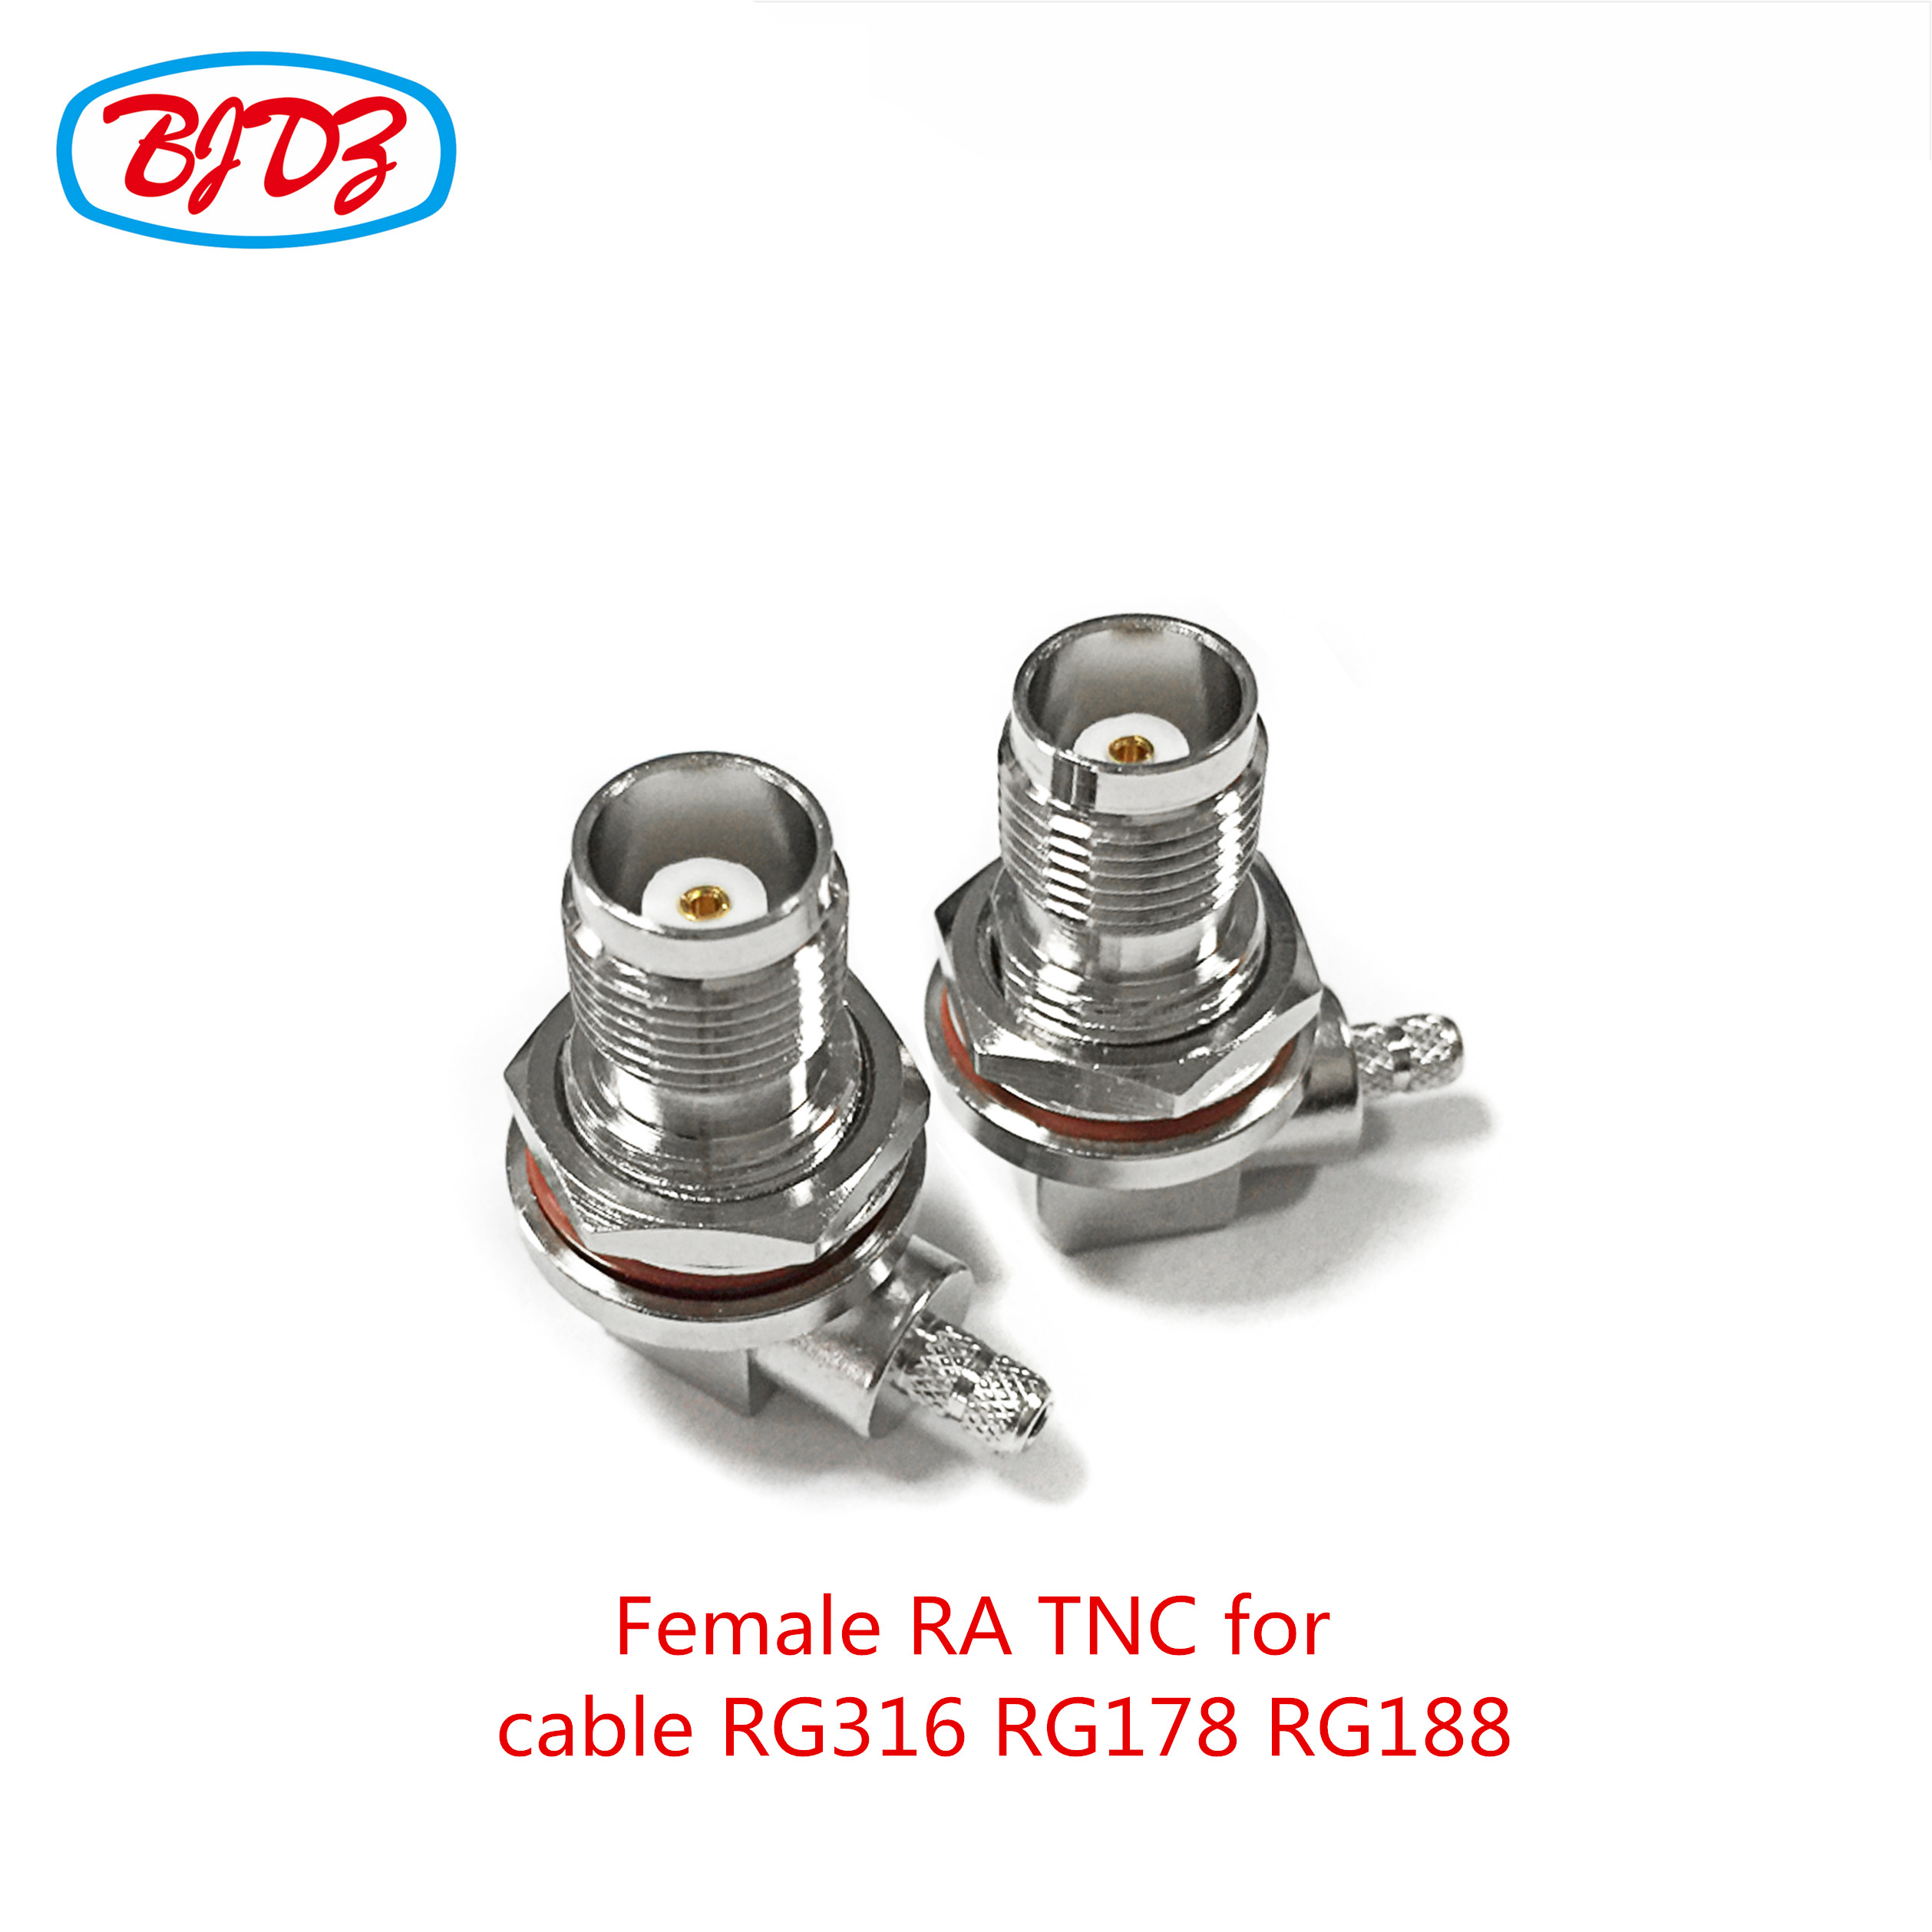 Waterproof rf connector bulkhead mounted tnc female connector for cable RG178